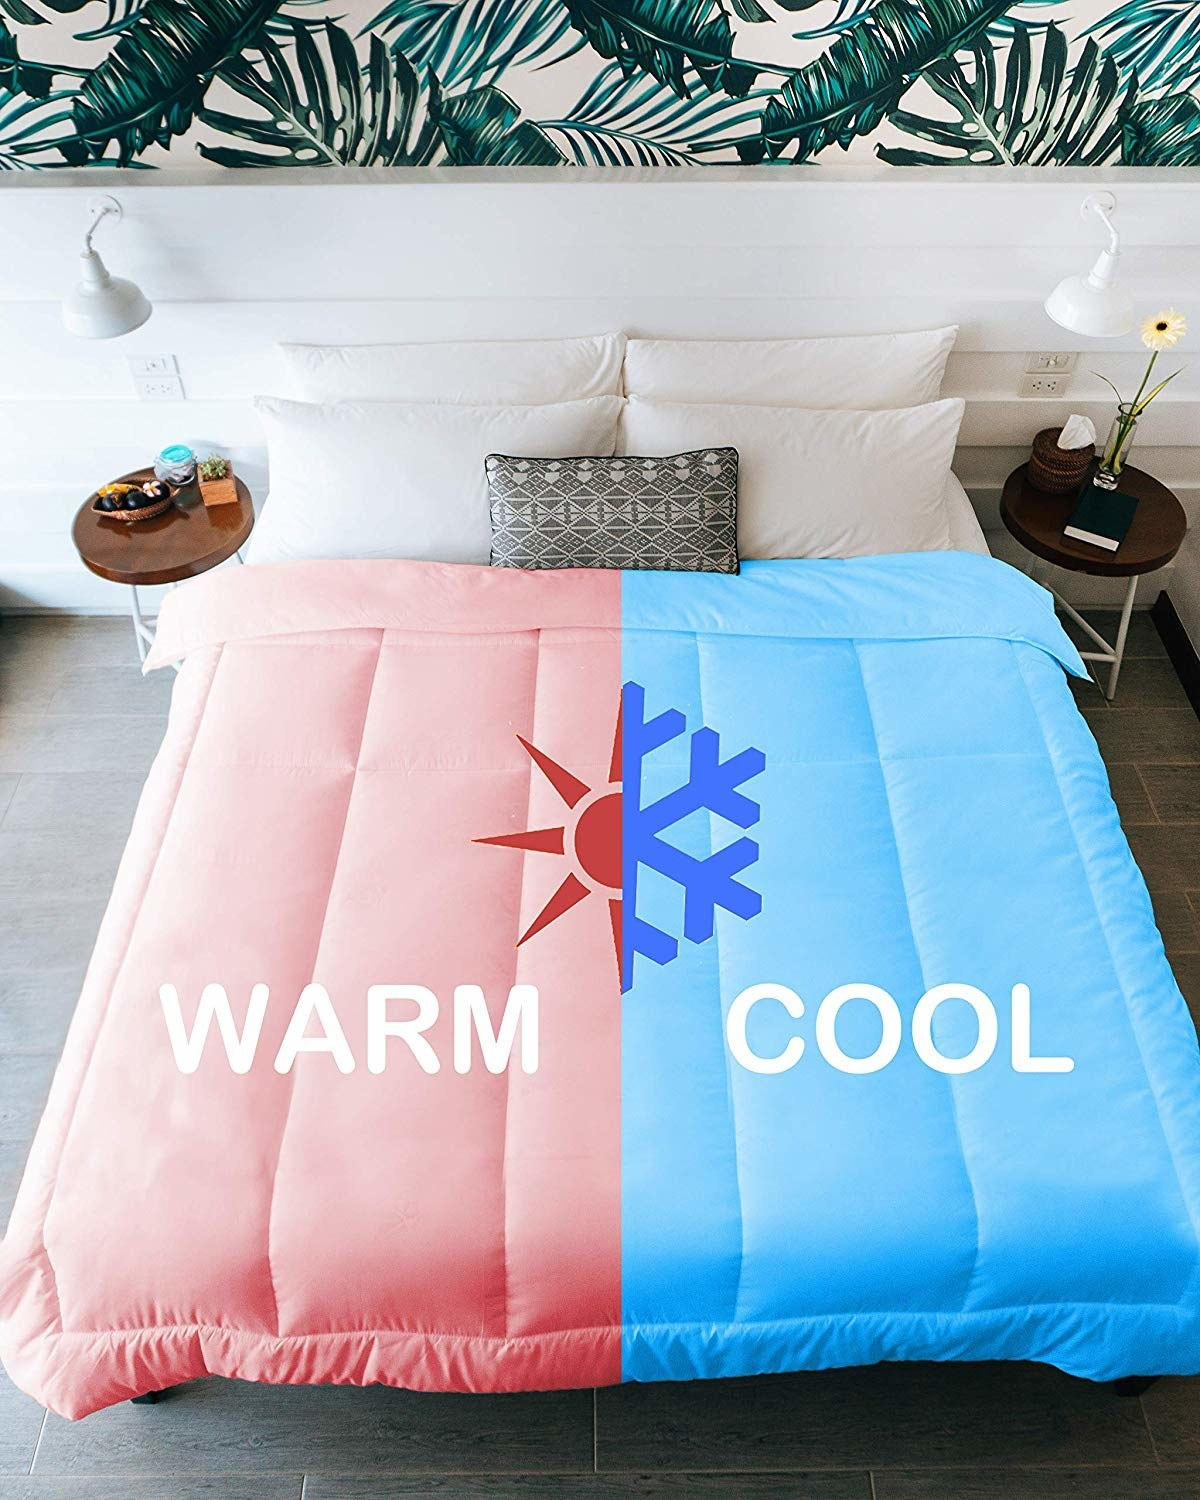 a graphic of a comforter to show how one side is warm and the other is cooler